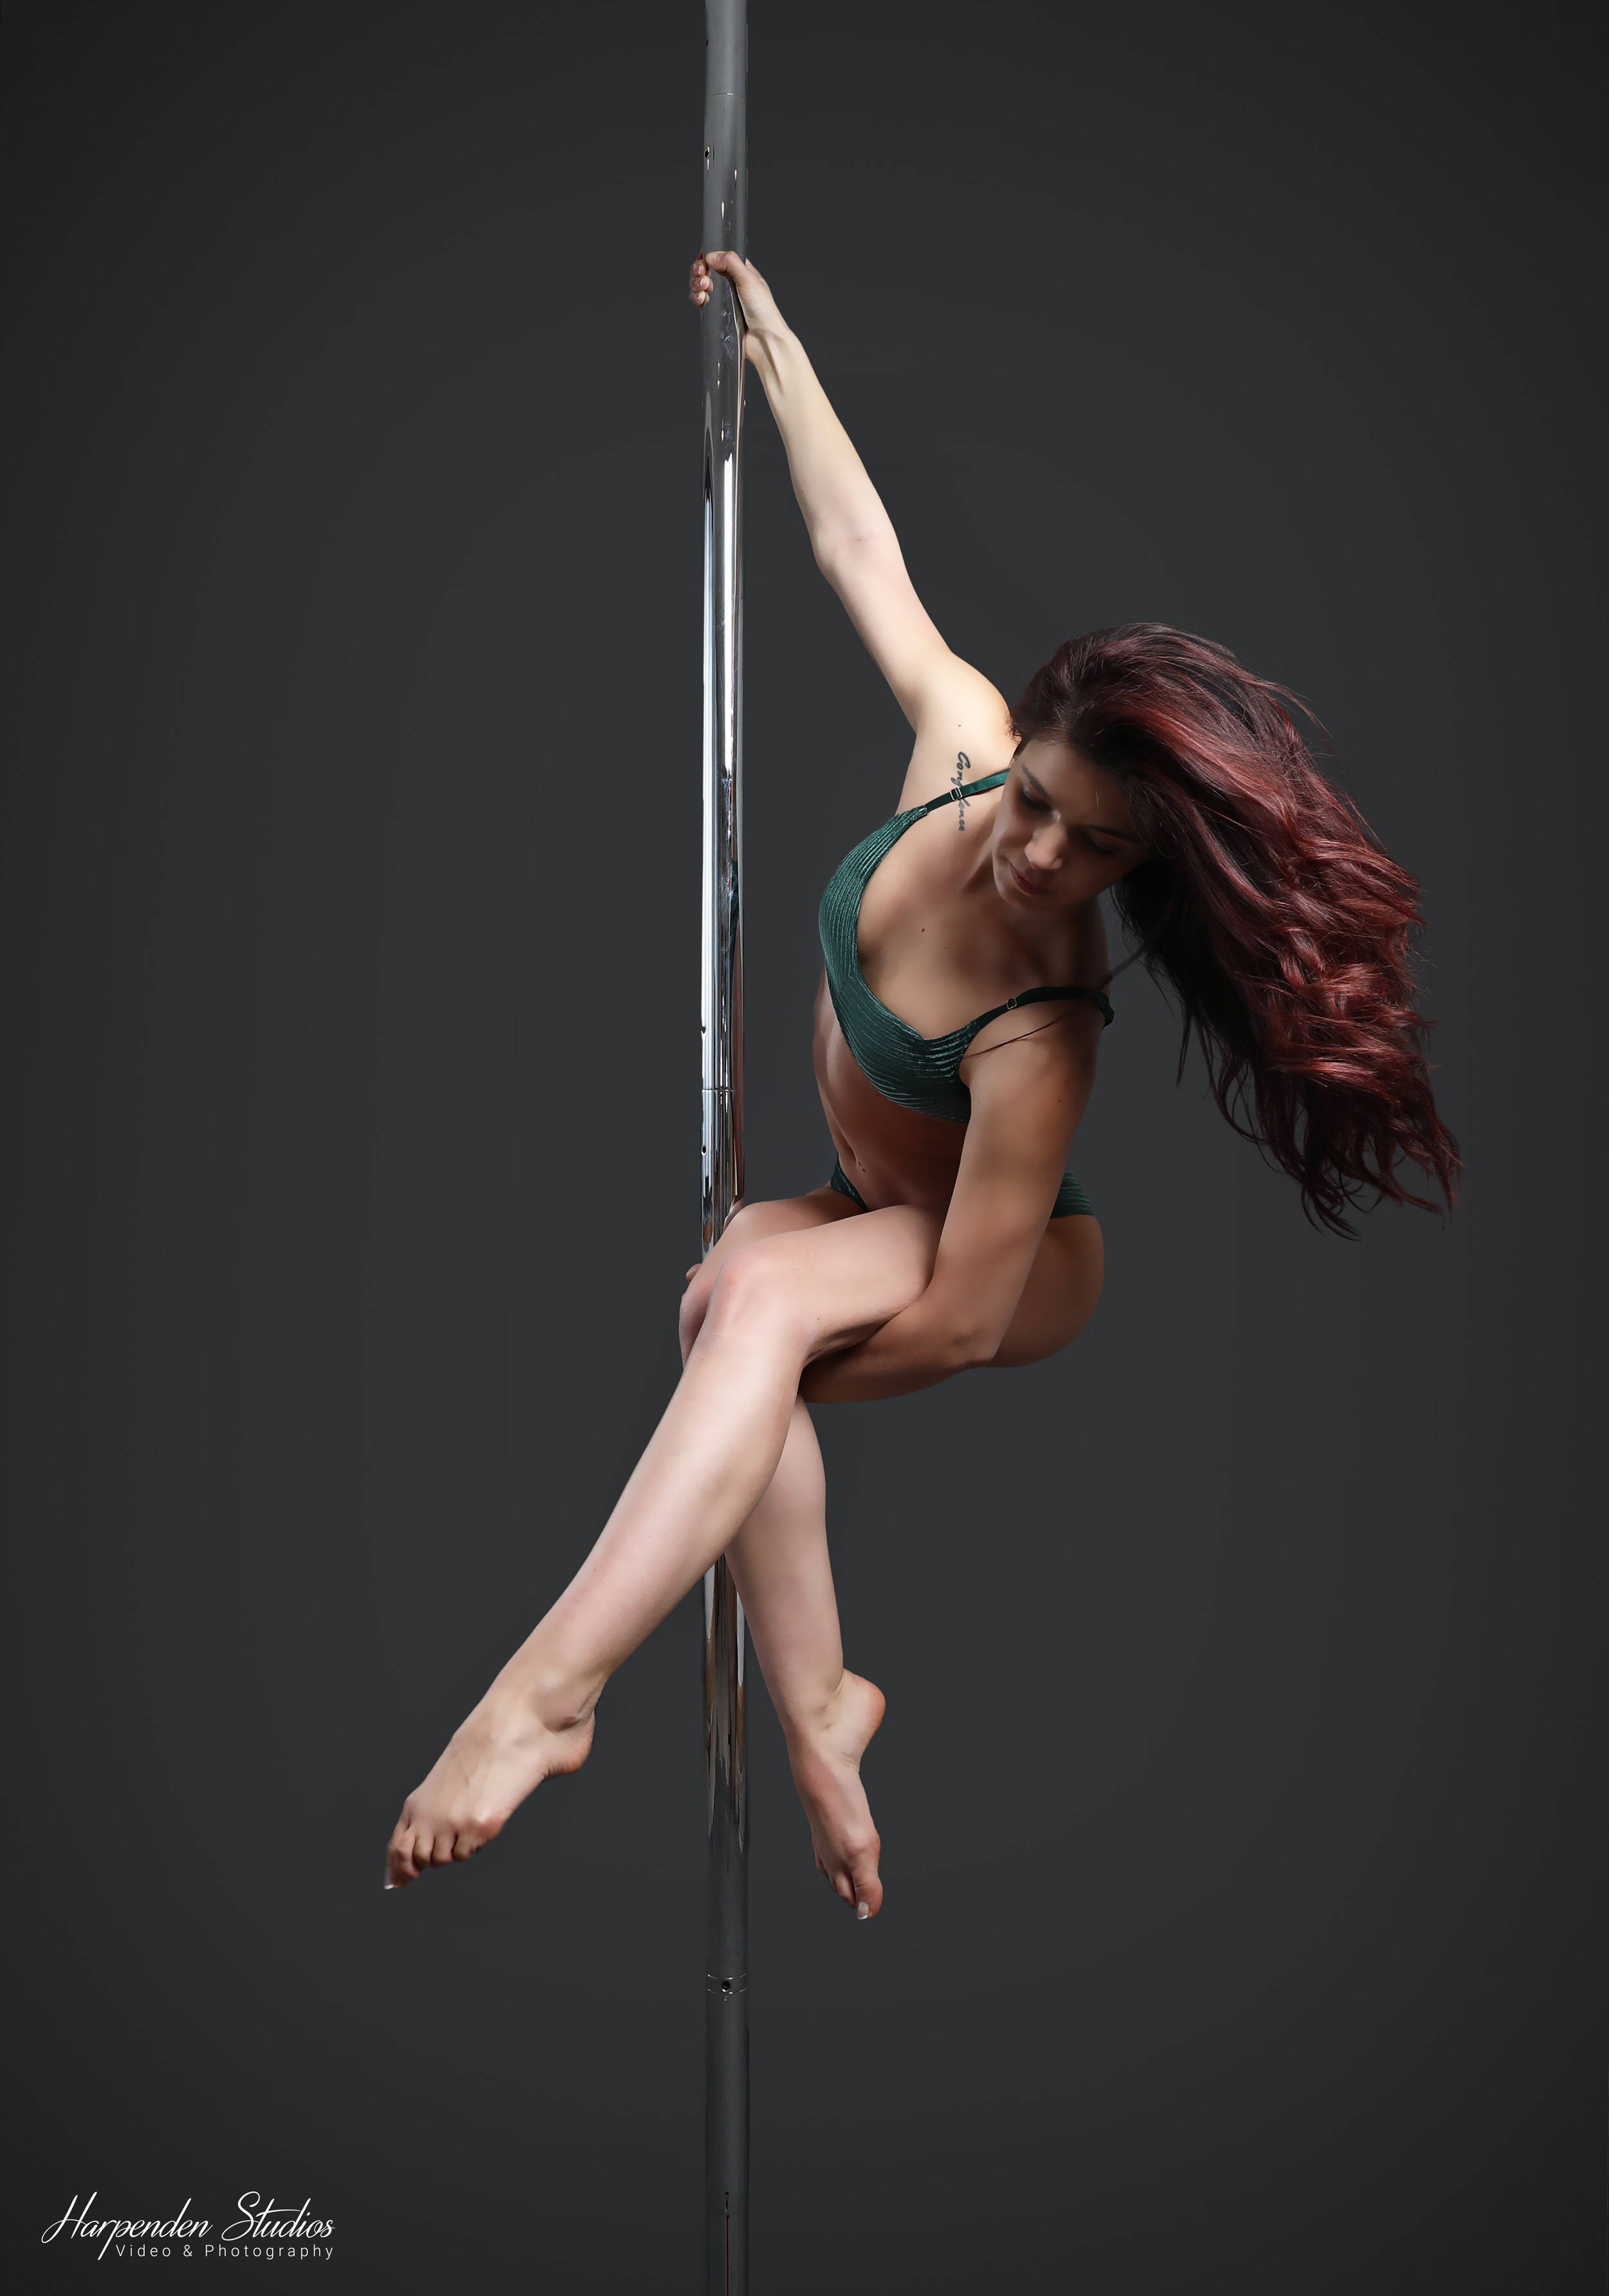 Instructor Martina holding a pose during a class at The Pole Hub